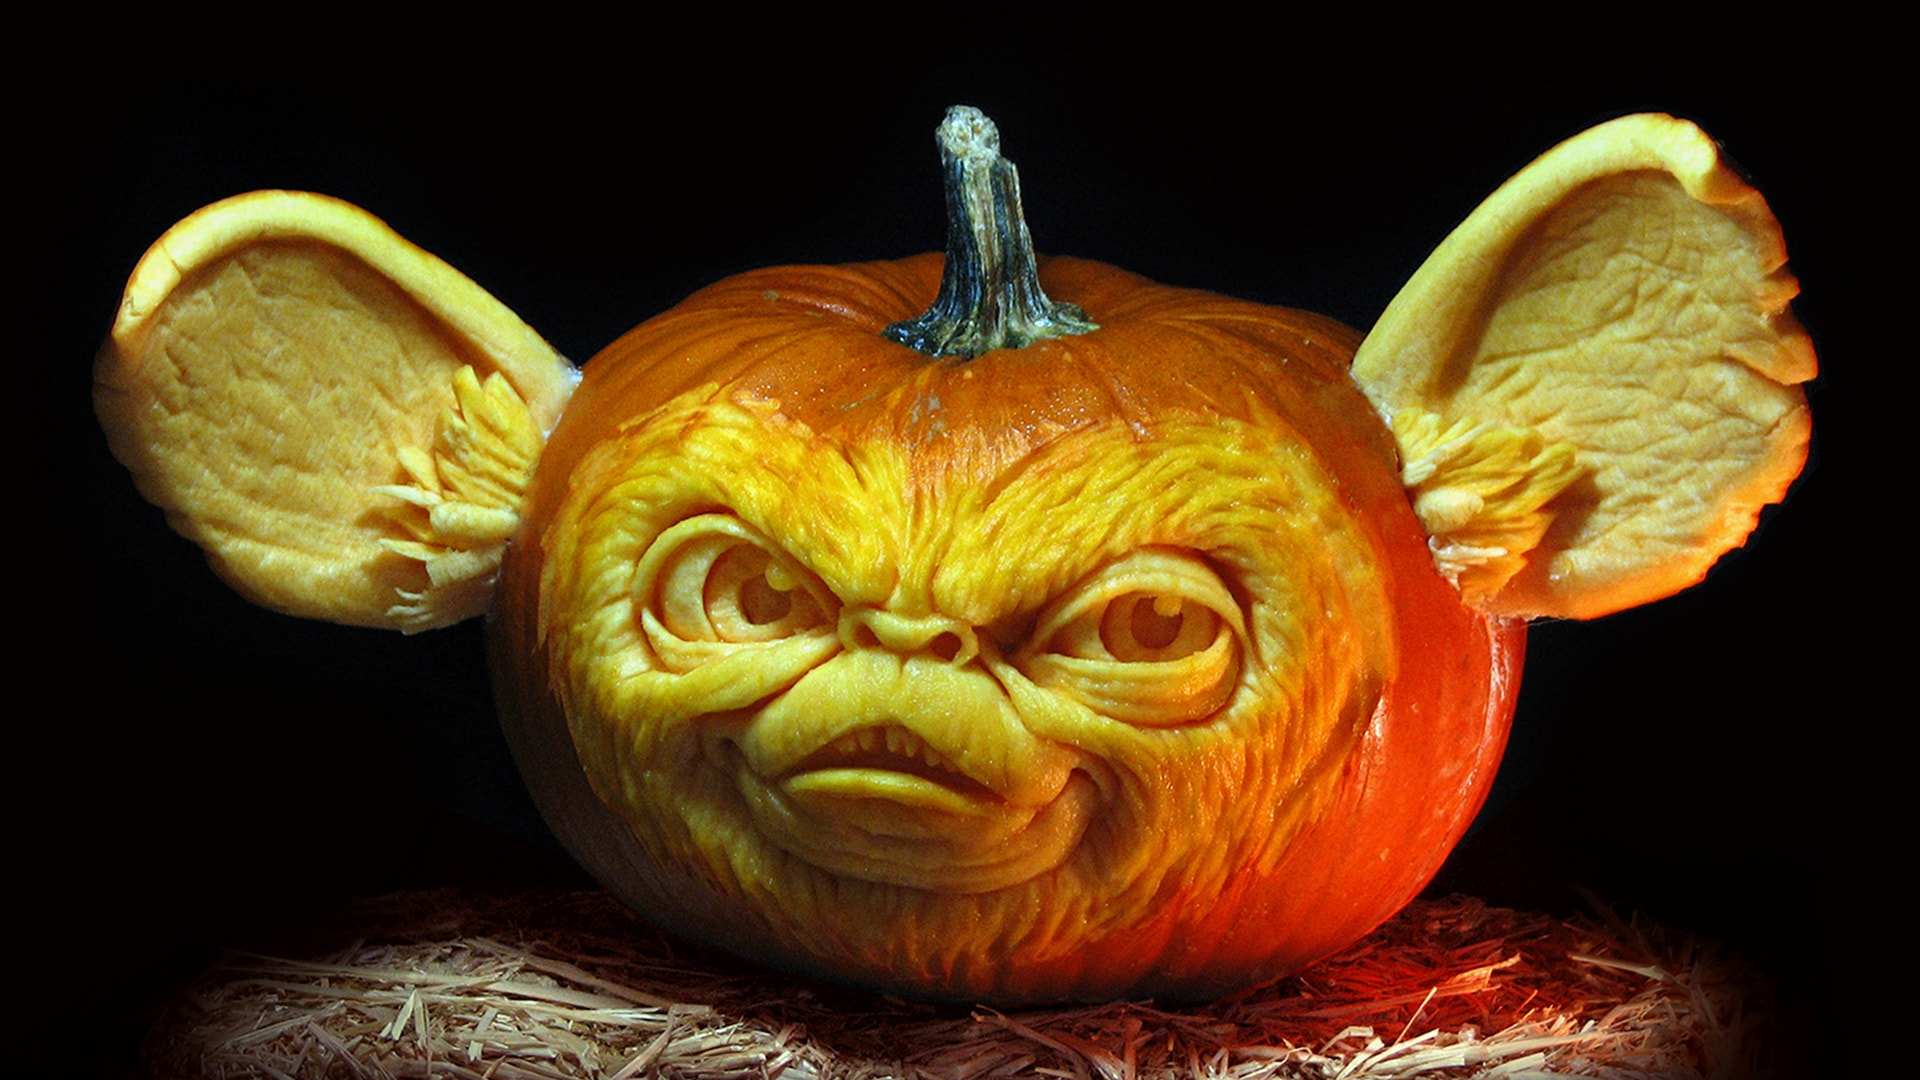 ss-141015-carved-pumpkins-tease'.today-ss-slide-desktop.jpg (1920×1080)